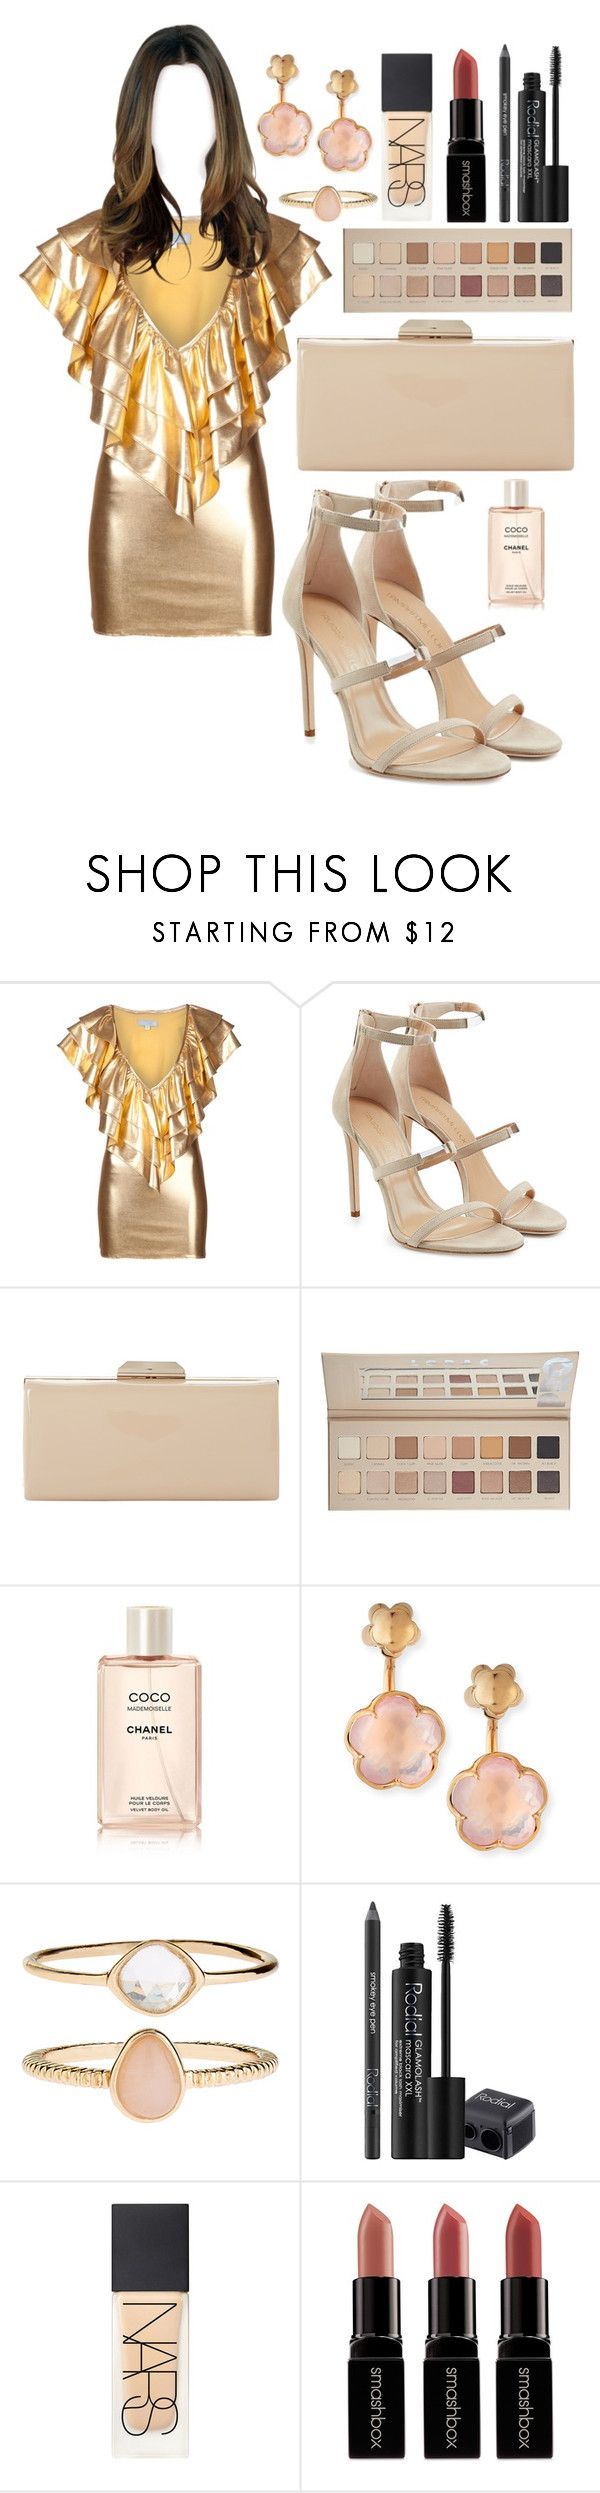 """""""Untitled #1745"""" by elizabeth-xsomosmasqueamorr ❤ liked on Polyvore featuring JULIA CLANCEY, Tamara Mellon, Dune, LORAC, Chanel, Pasquale Bruni, Accessorize, Rodial, NARS Cosmetics and Smashbox"""